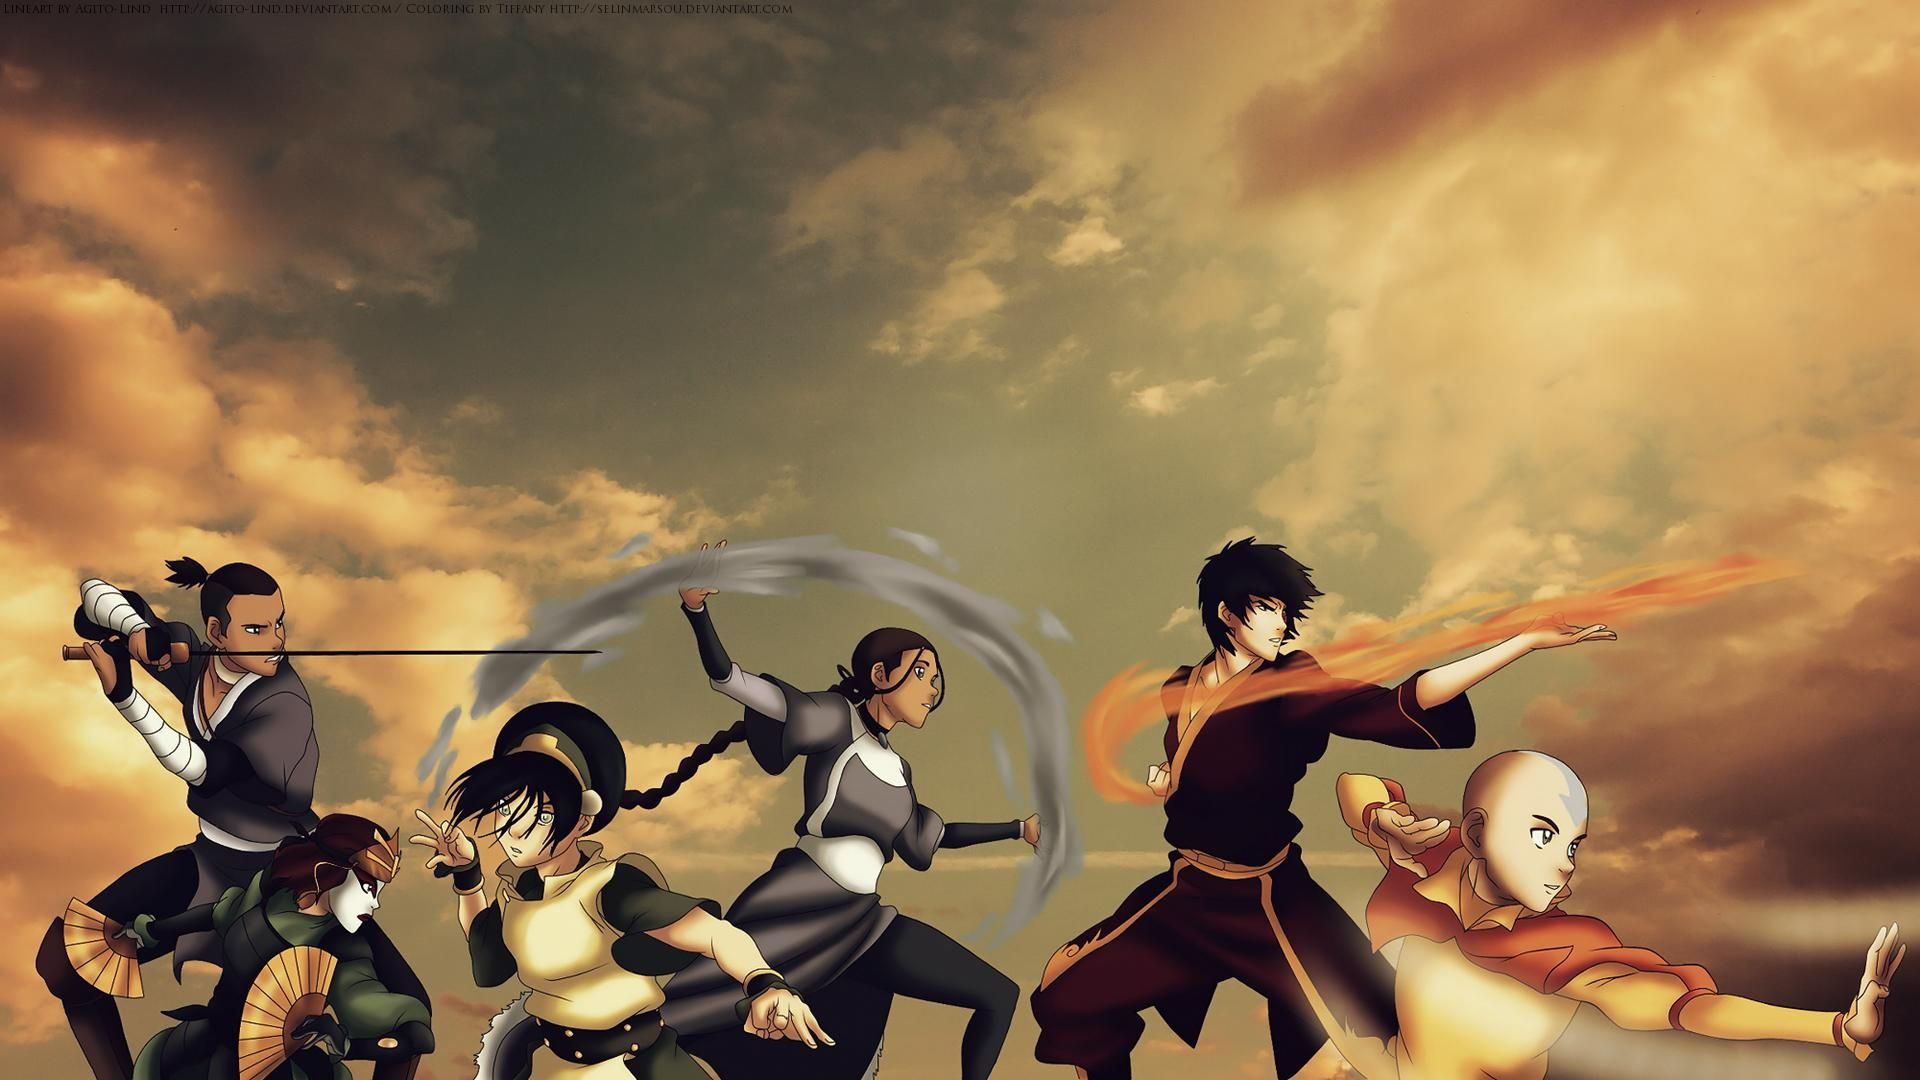 Avatar The Last Airbender Wallpapers High Quality Download Free The Last Airbender Avatar Avatar Aang